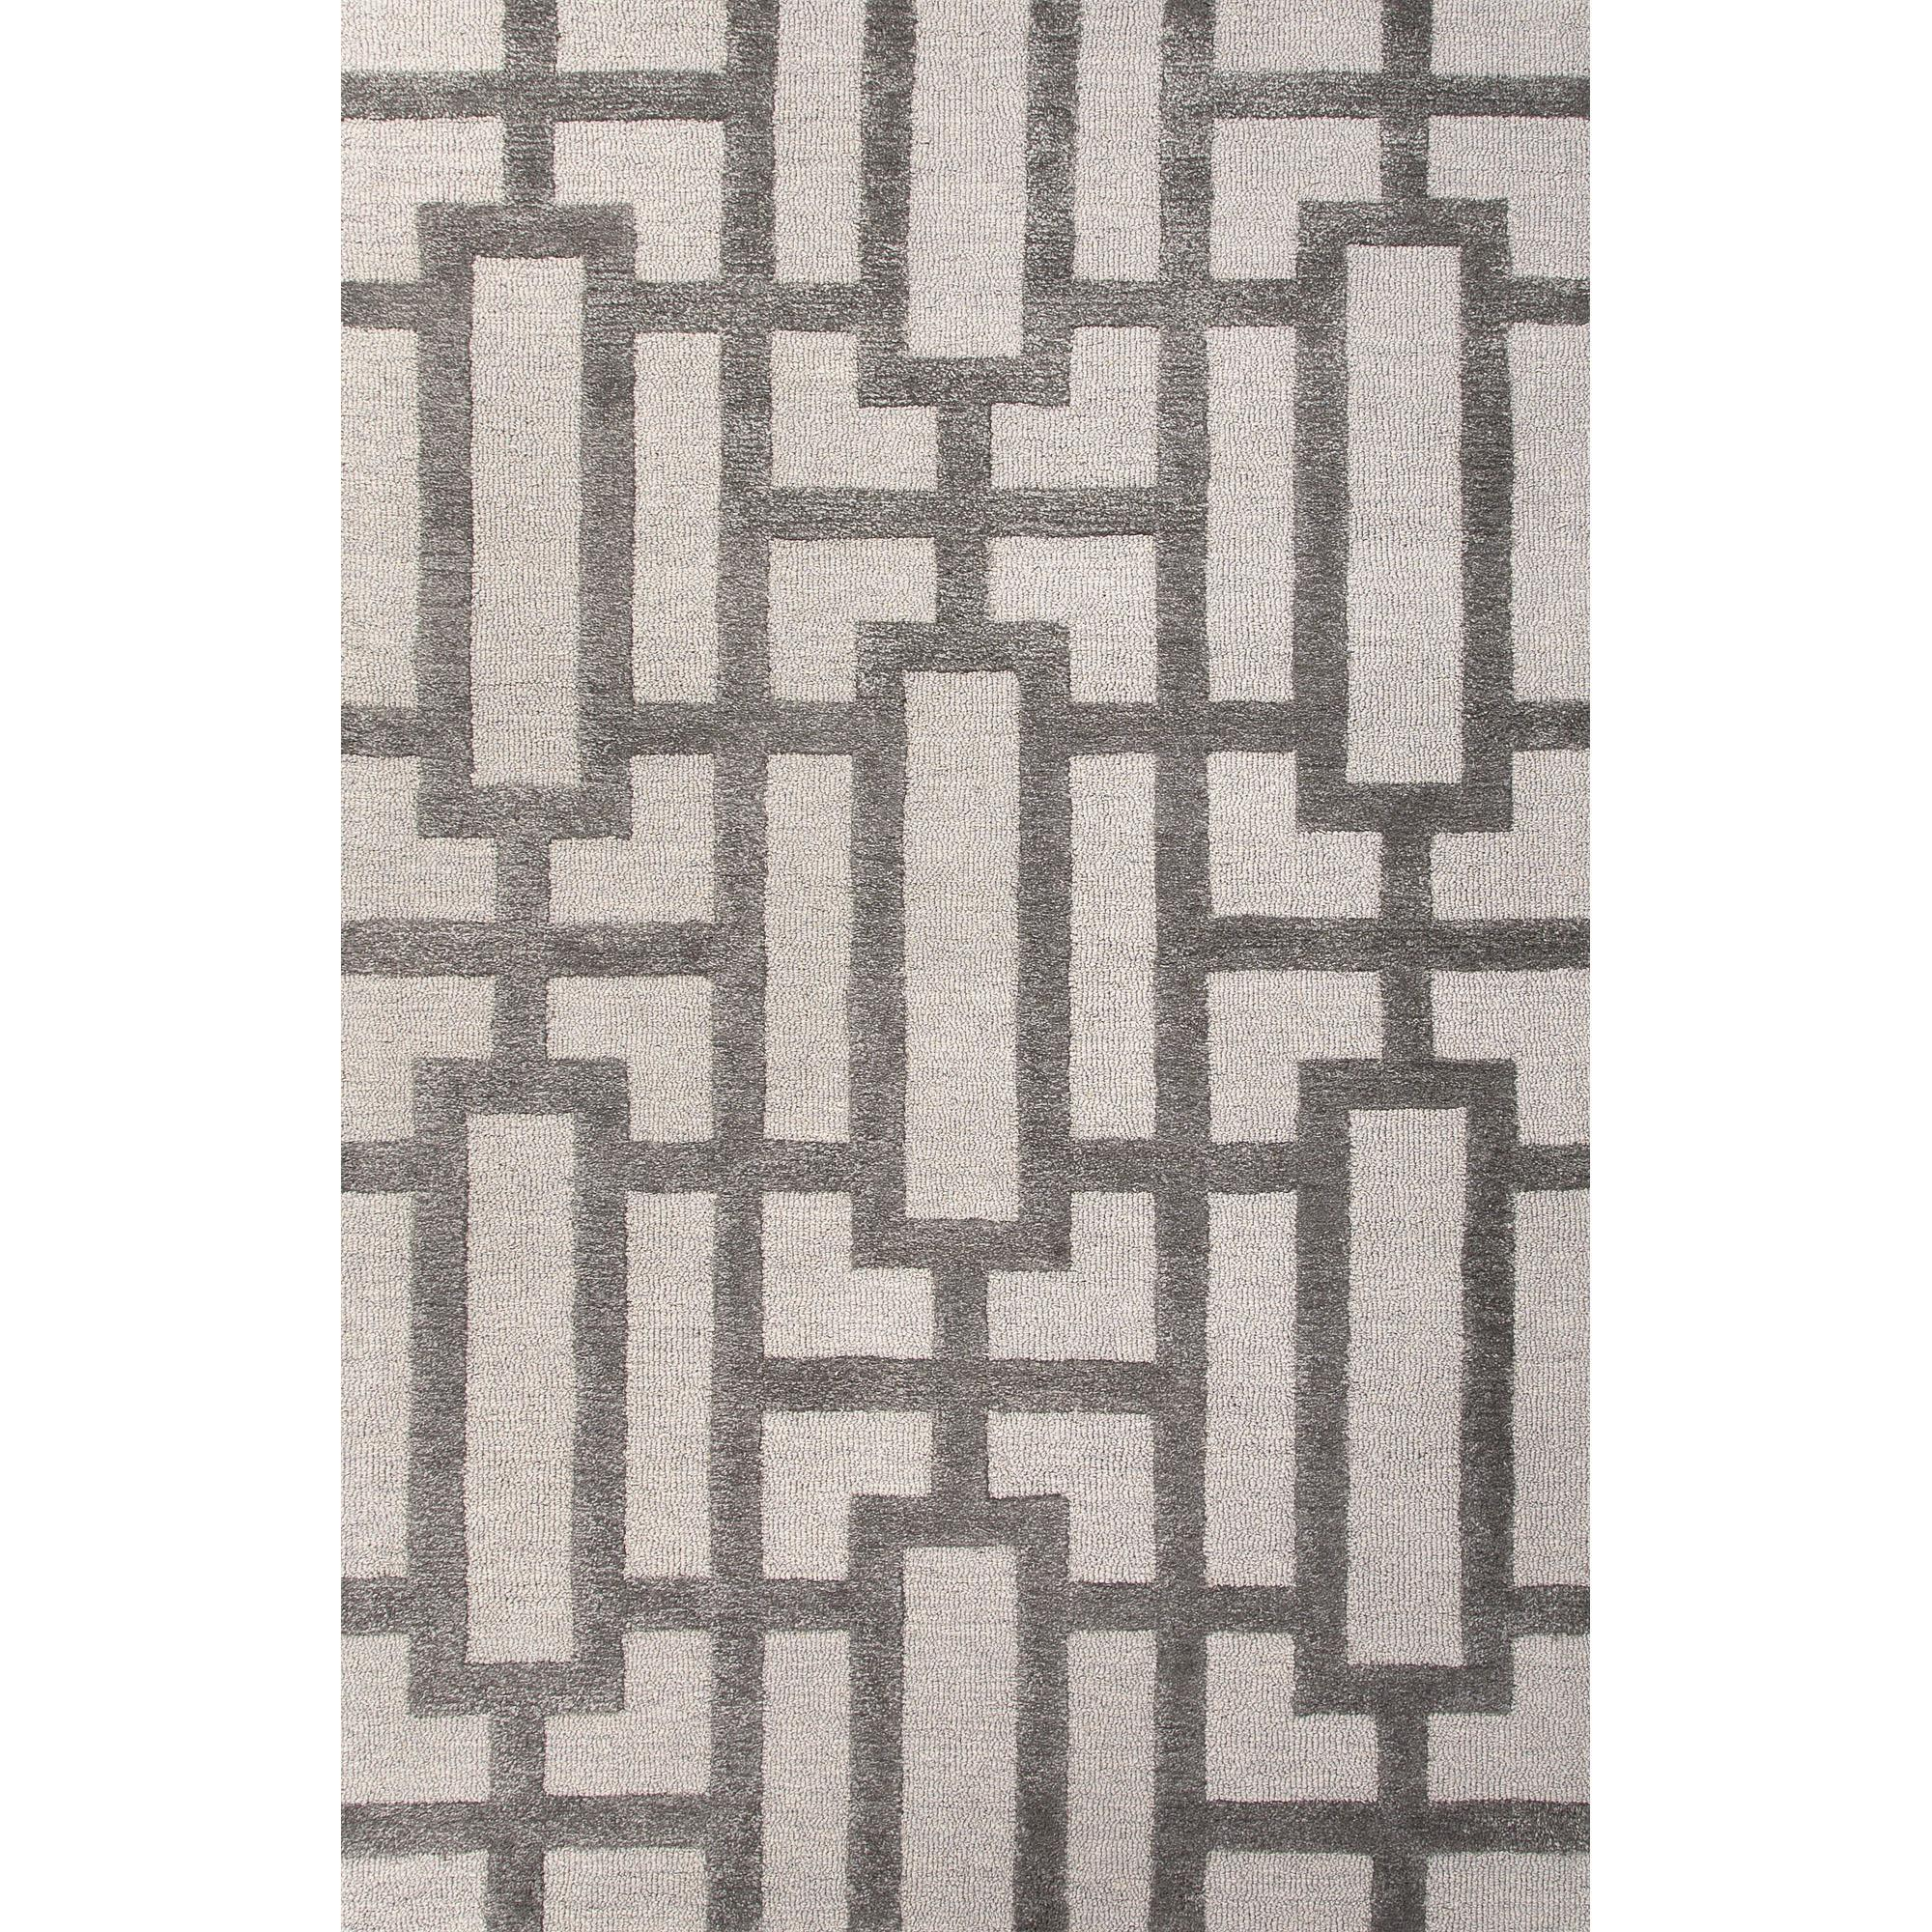 JAIPUR Rugs City 9.6 x 13.6 Rug - Item Number: RUG111862